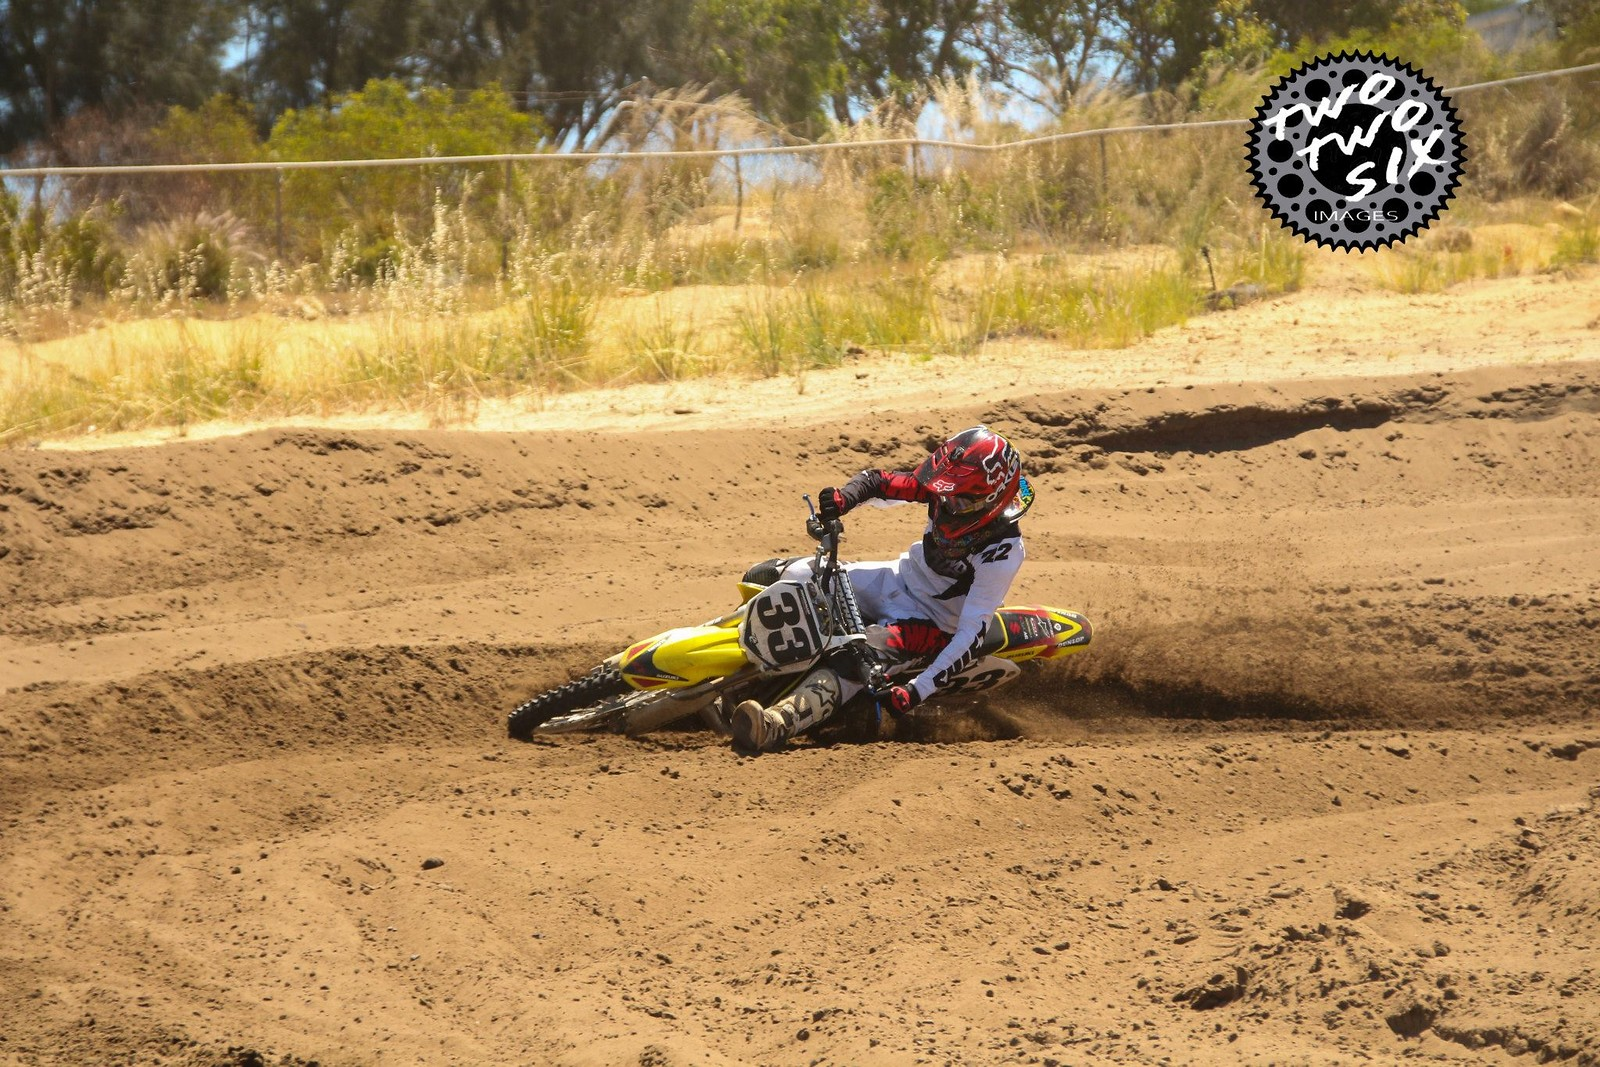 trying to scrape  - troy.ewens - Motocross Pictures - Vital MX